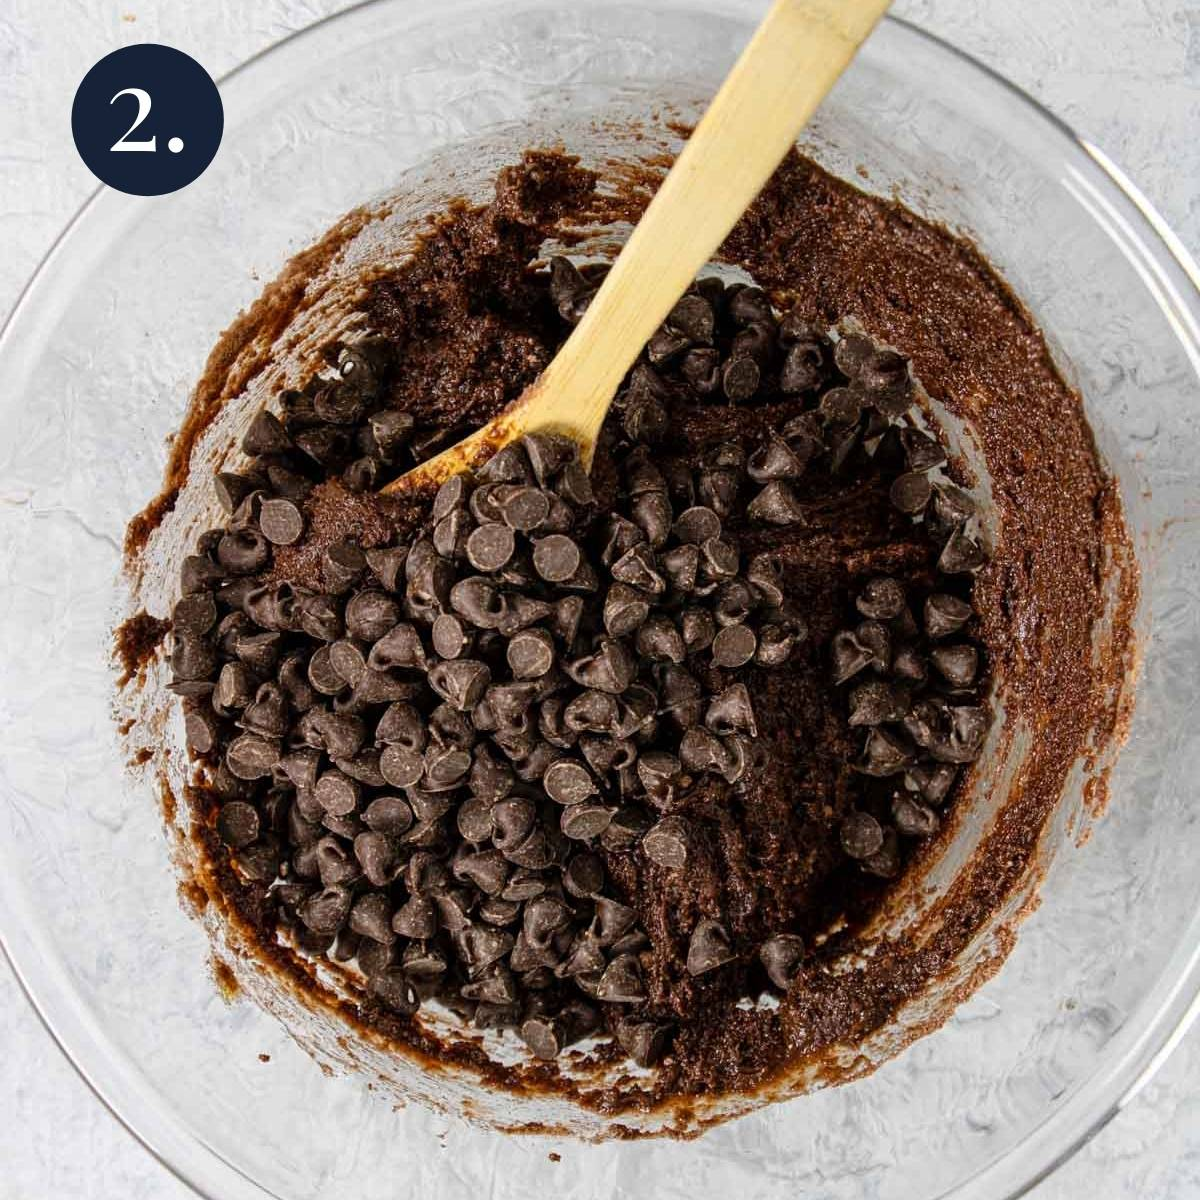 cake mix brownie batter in a bowl with chocolate chips